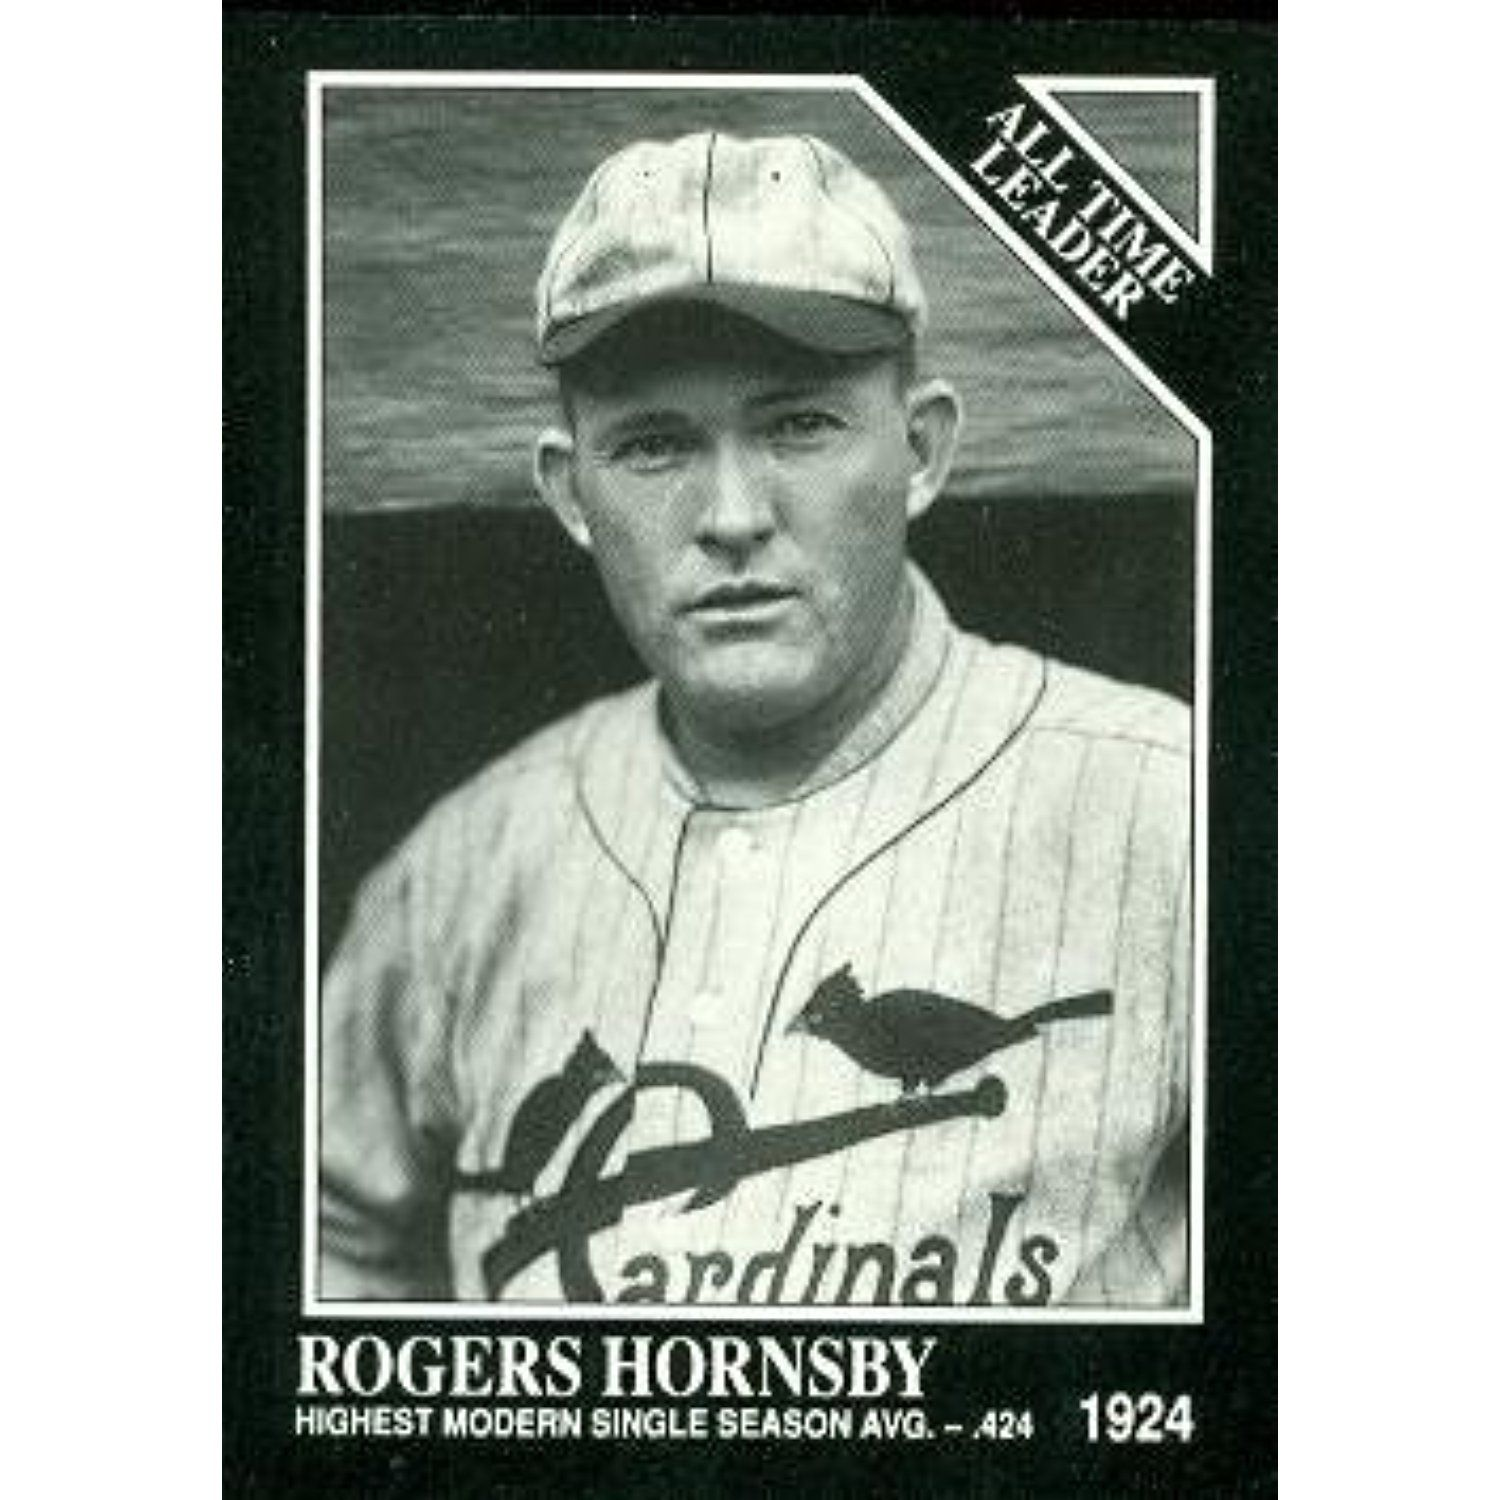 Rogers Hornsby Baseball Card St Louis Cardinals 1991 Sporting